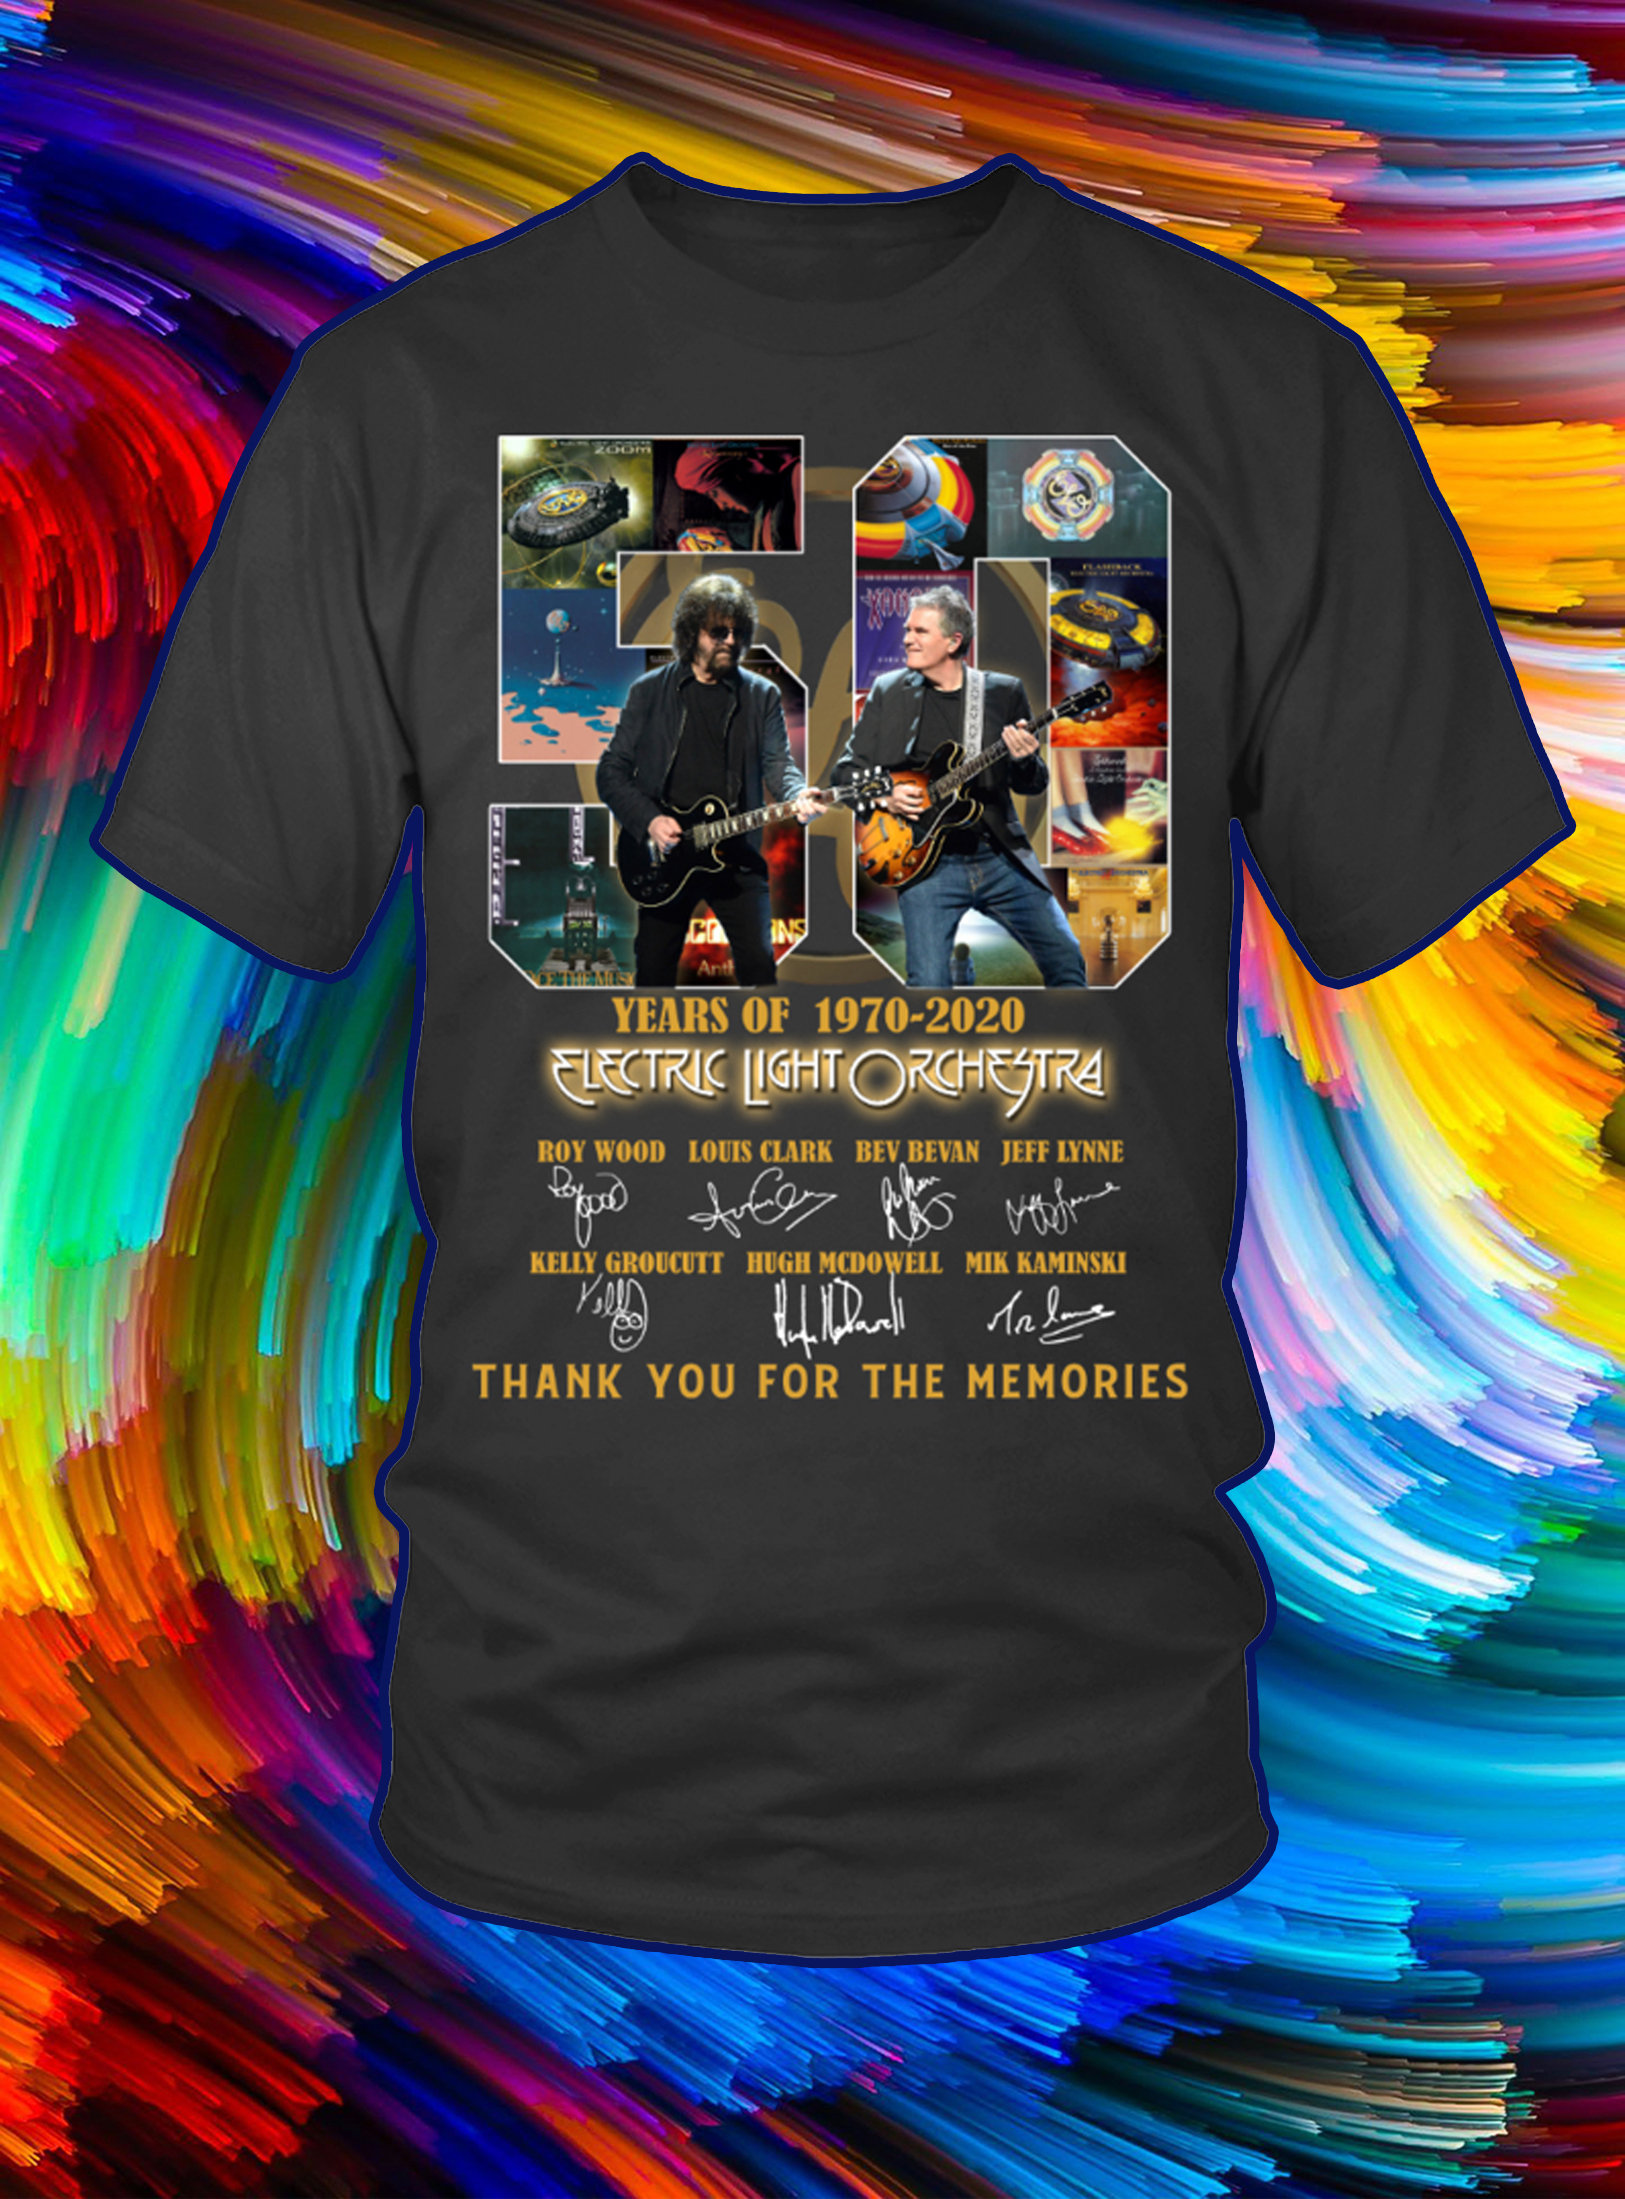 50 years of 1970 2020 electric light orchestra thank you for the memories shirt